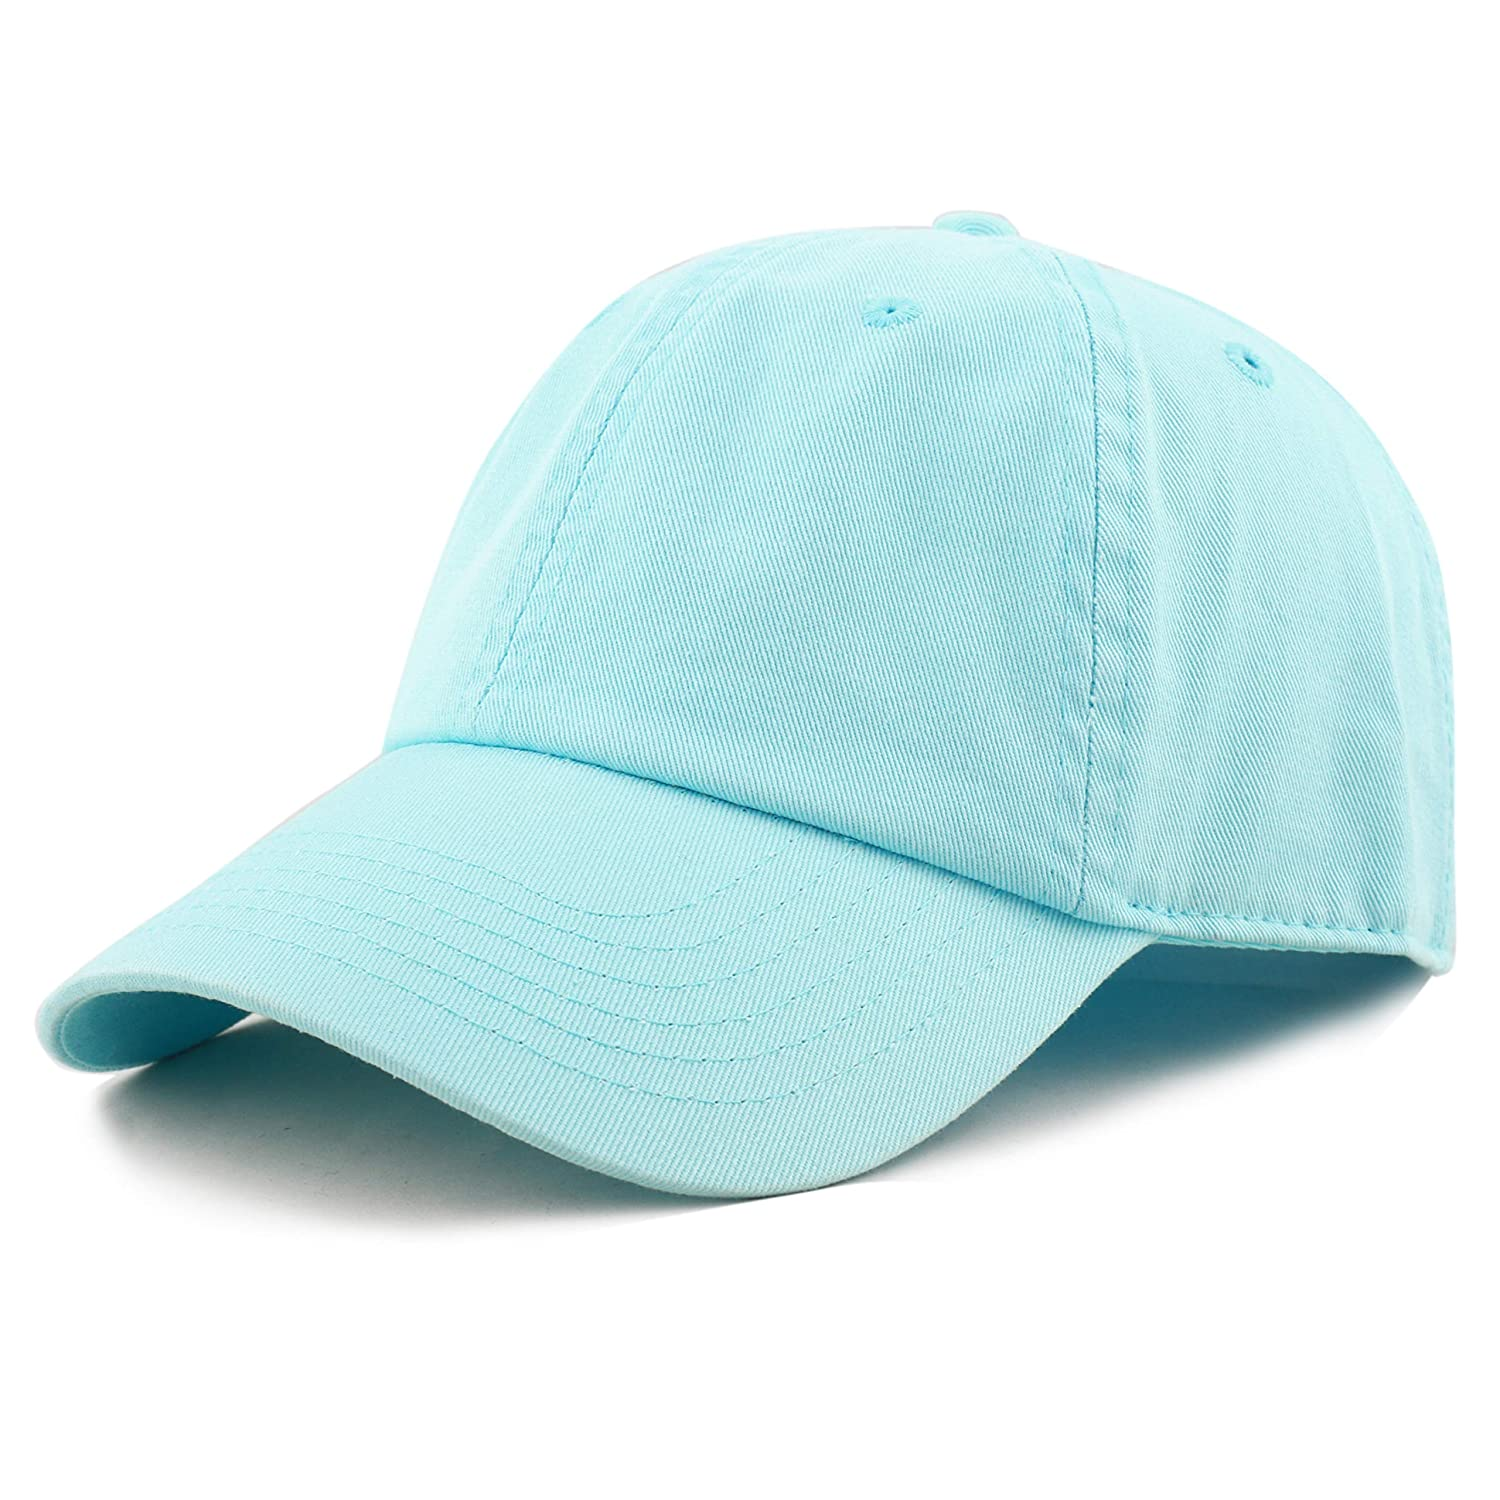 c6b6751ba84 THE HAT DEPOT Unisex Blank Washed Low Profile Cotton and Denim Baseball Cap  Hat (Aqua) at Amazon Men s Clothing store